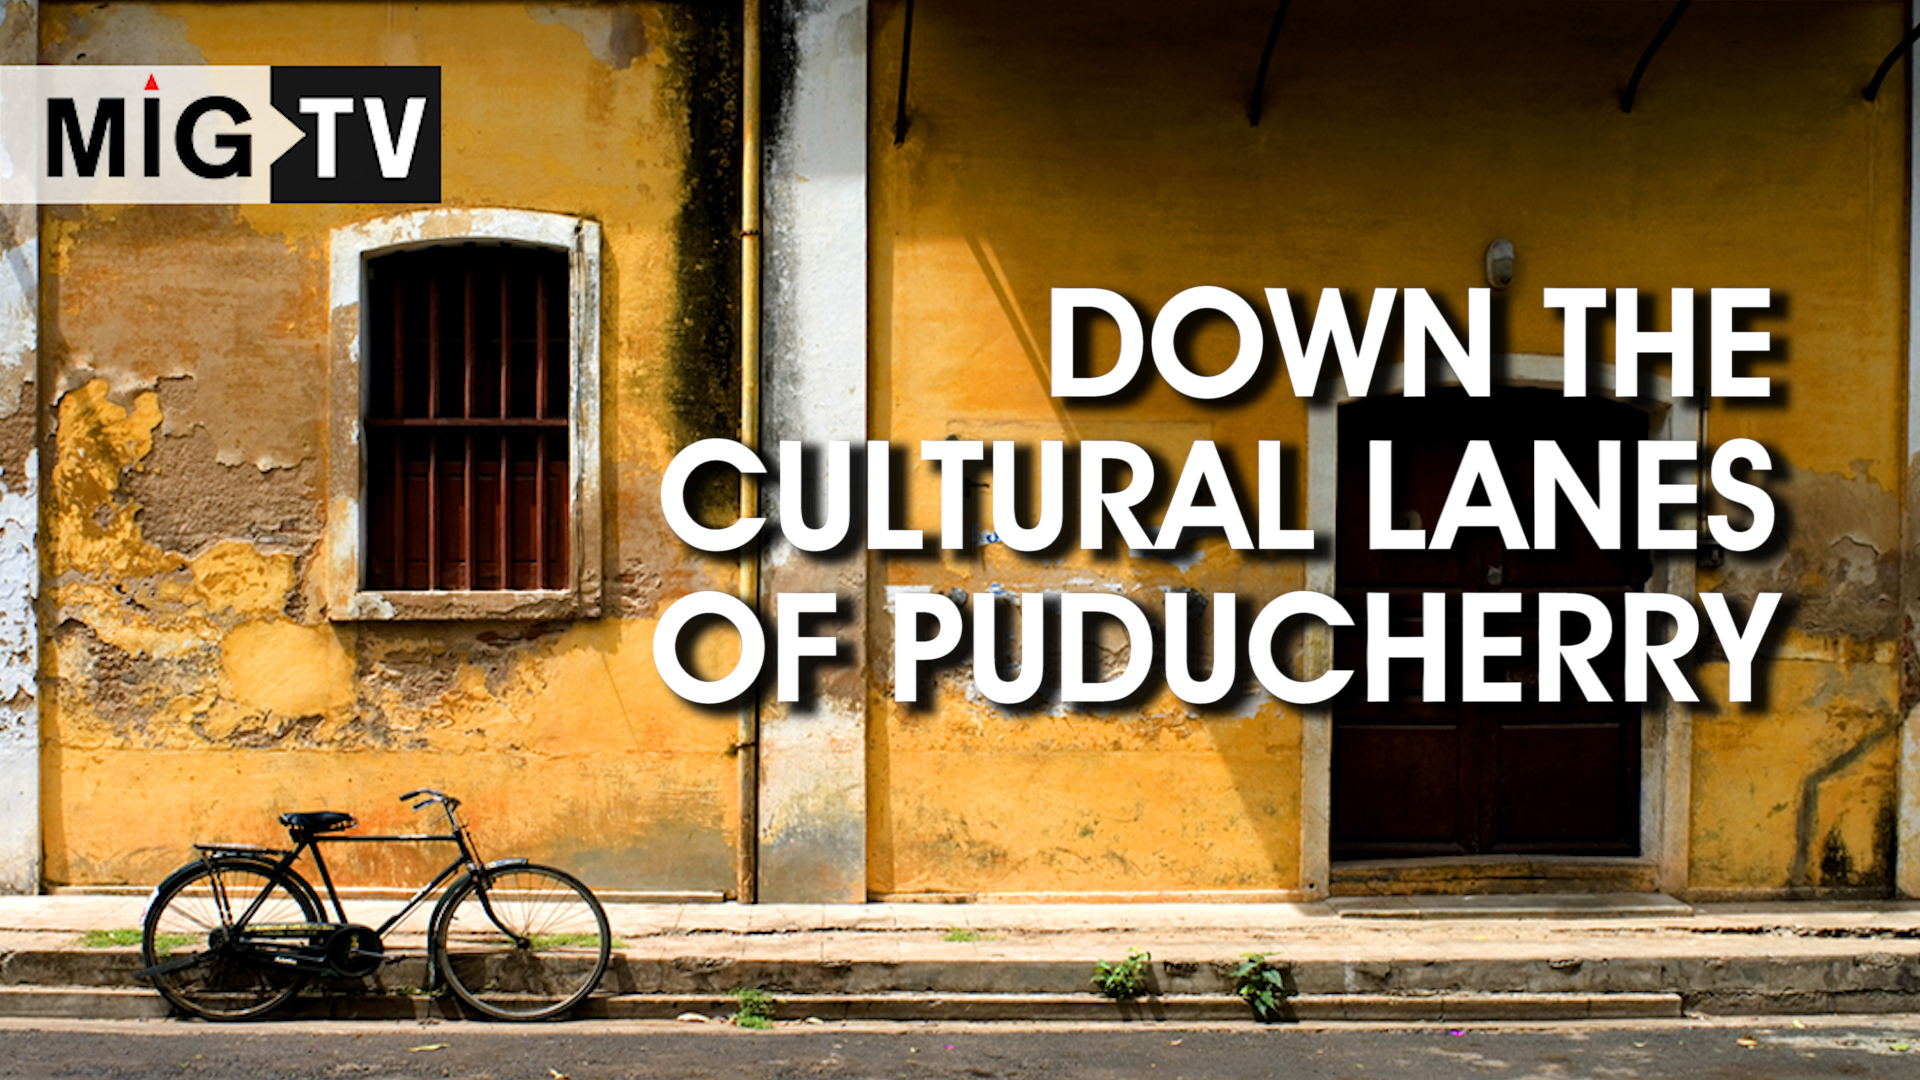 Down the cultural lanes of Puducherry